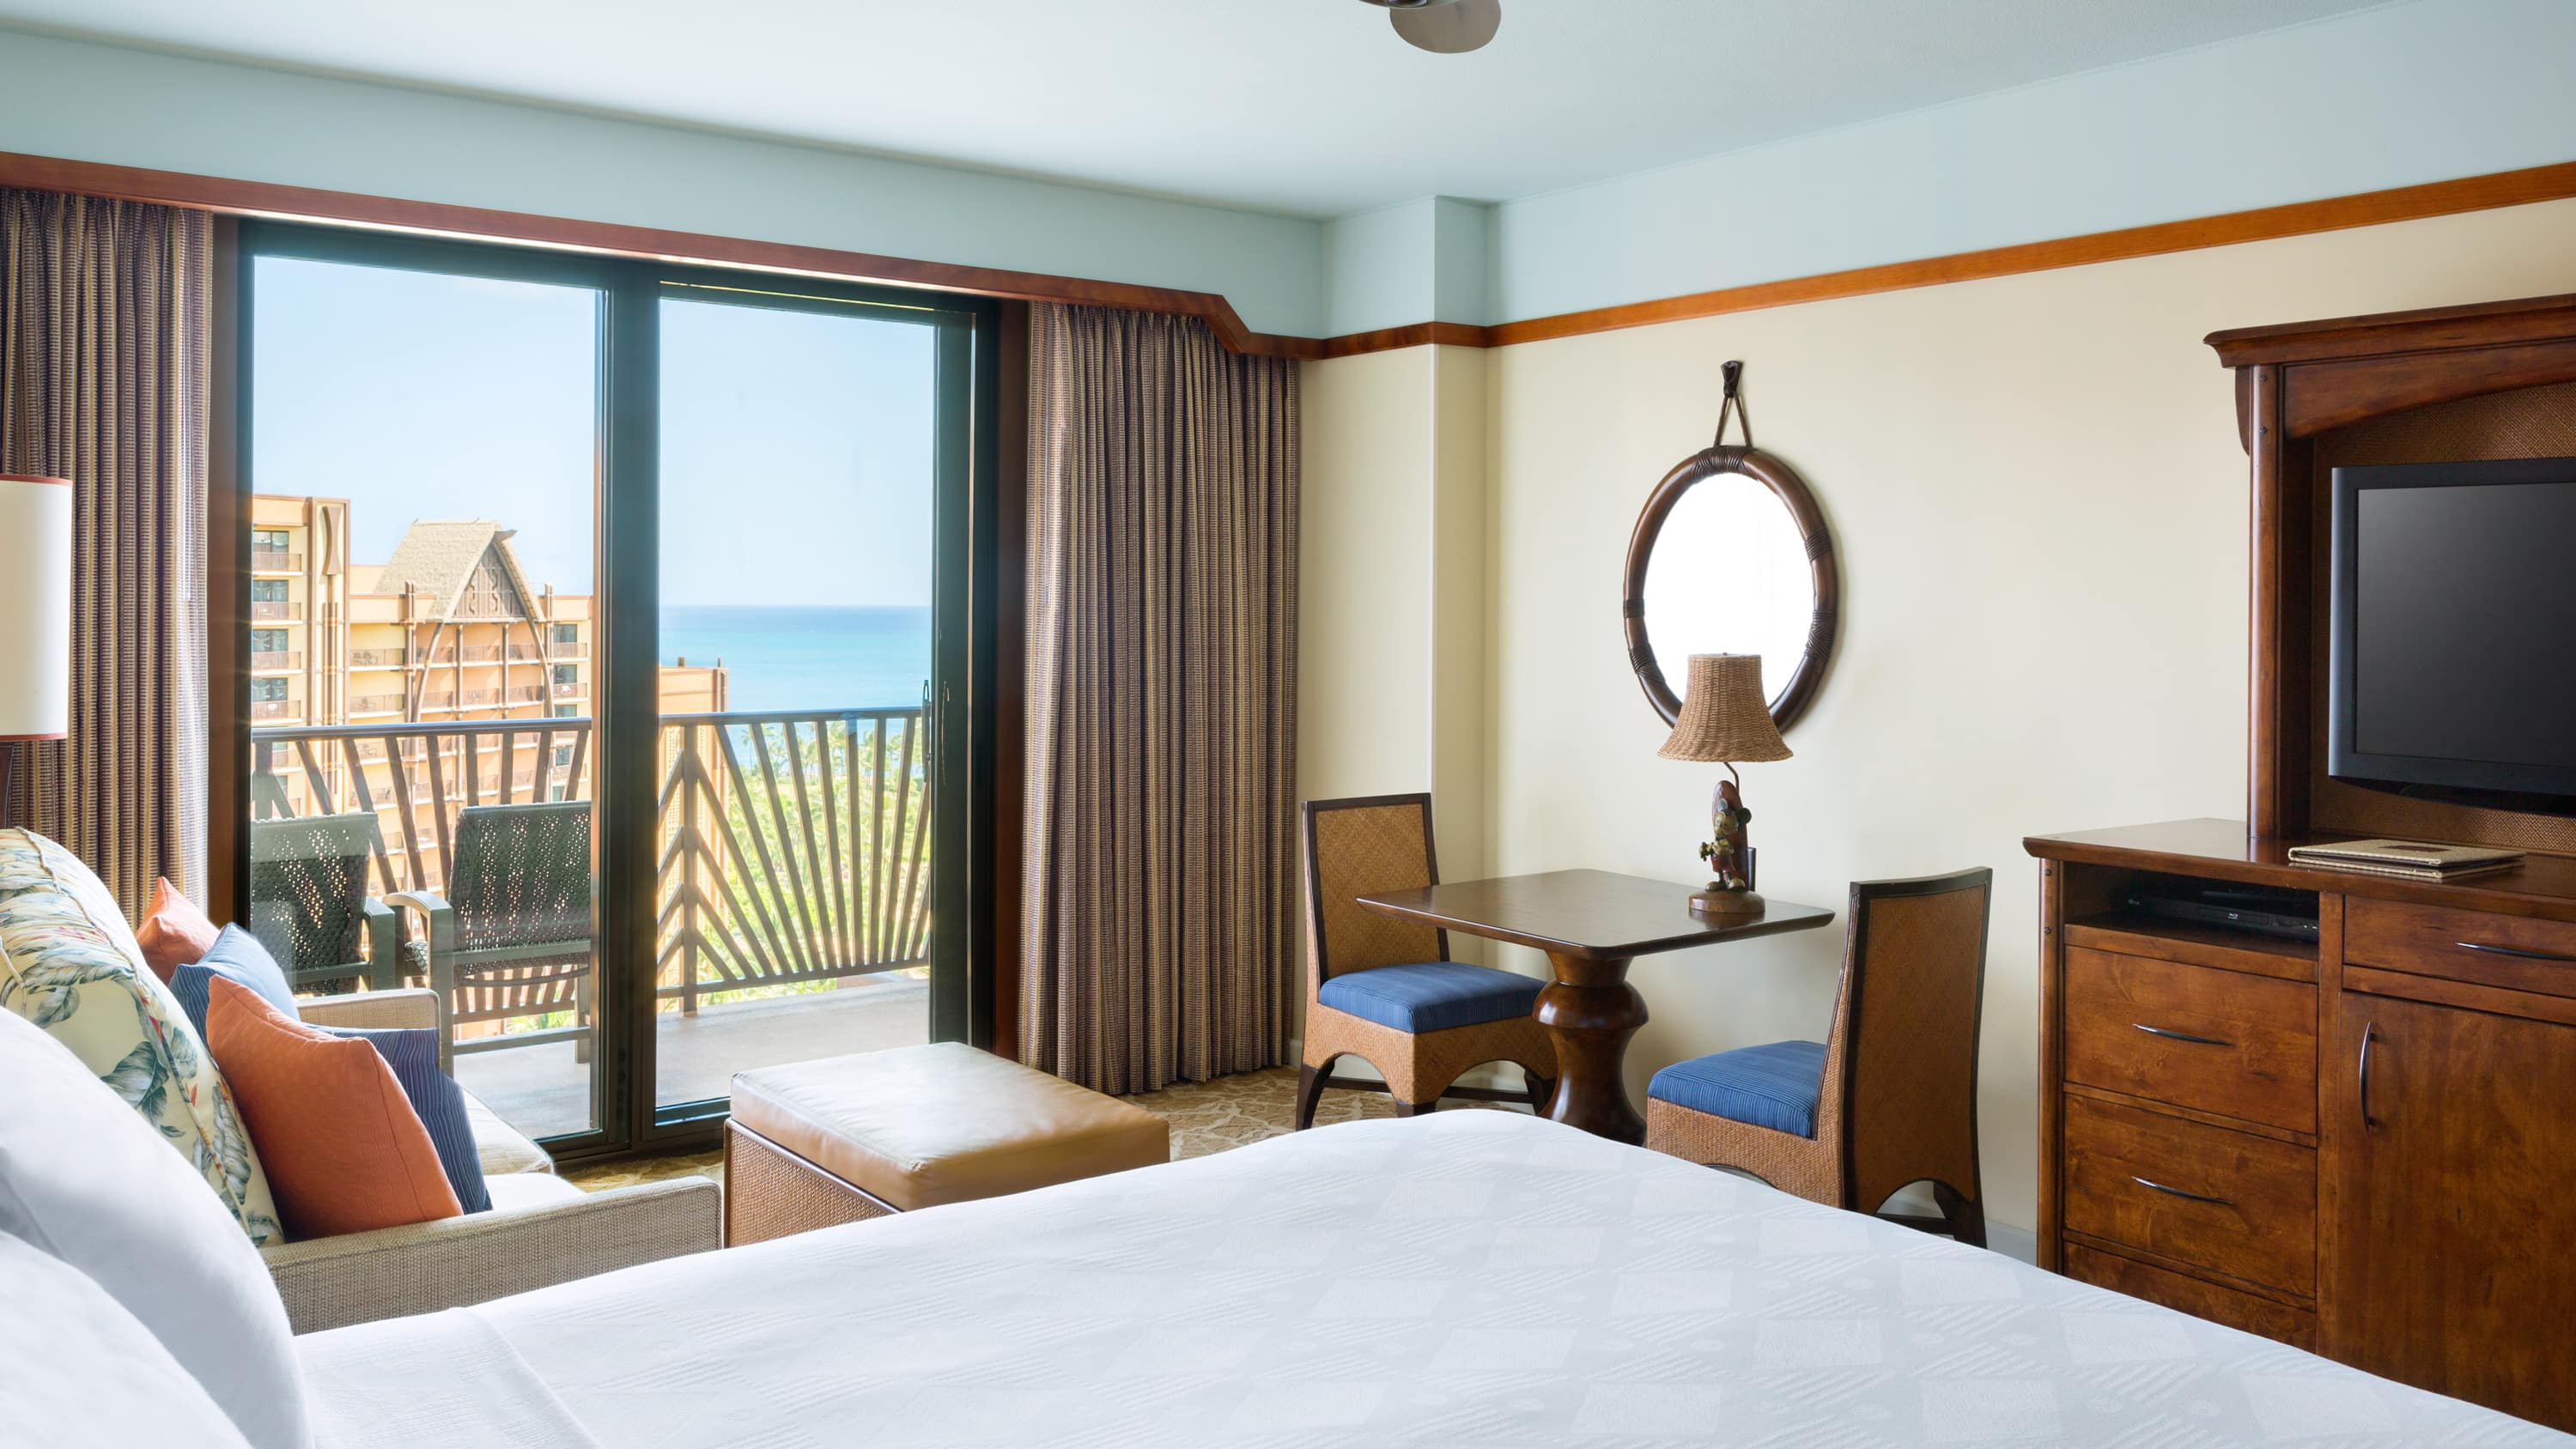 Generous amenities and sweet surprises make our standard rooms feel luxurious.